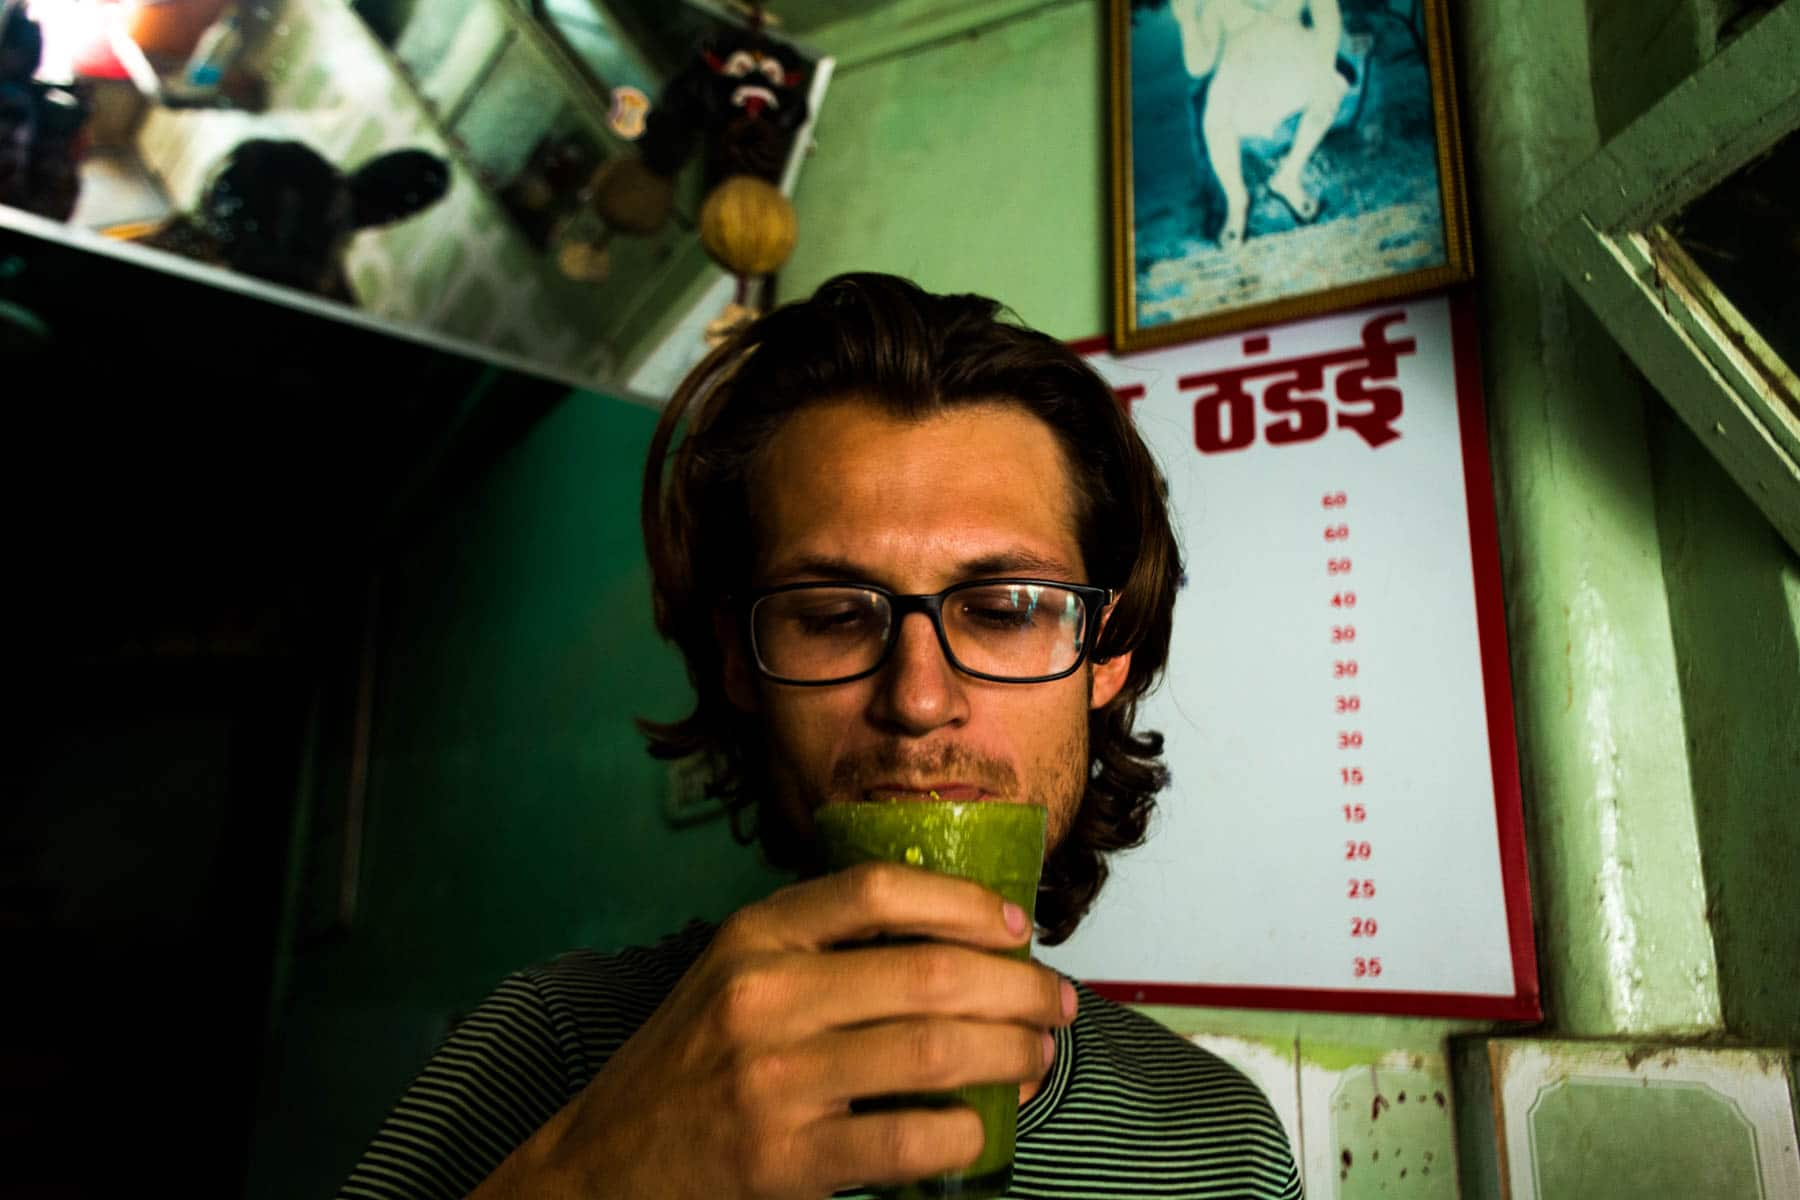 Where to find bhang lassi in Varanasi, India - Drinking bhang lassi - Lost With Purpose